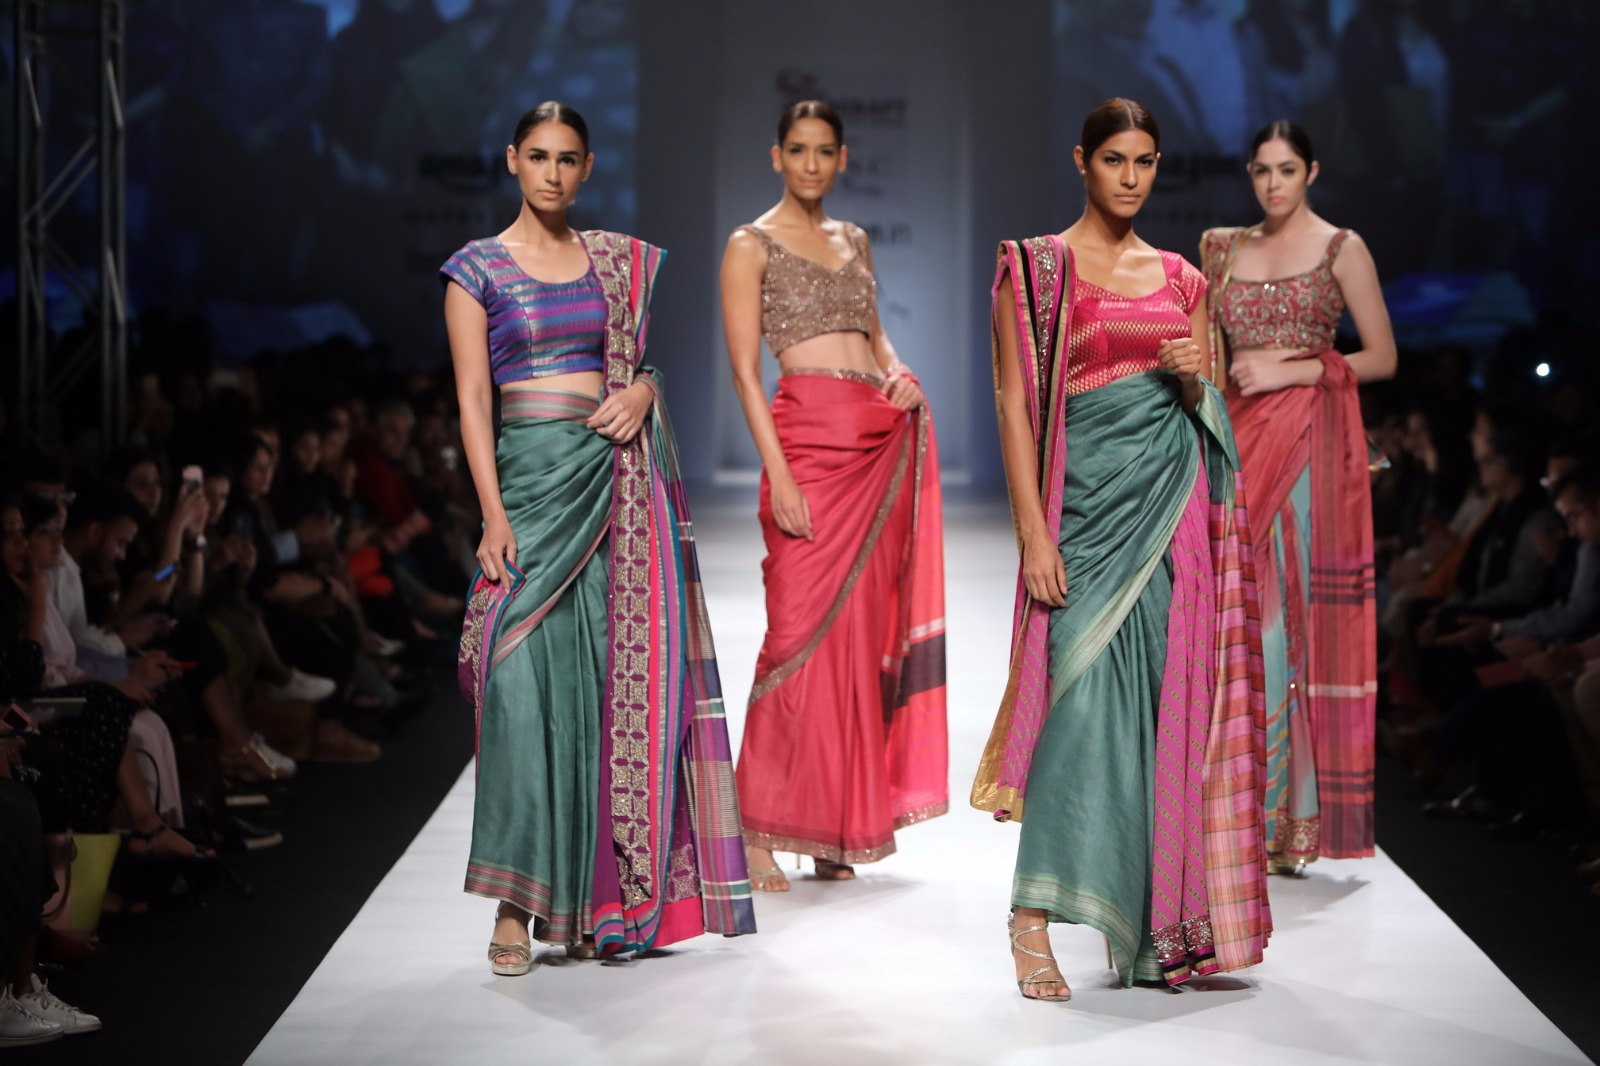 http://www.talksassy.com/wp-content/uploads/2017/03/Amazon-India-Fashion-Week-Autumn-Winter-2017-9.jpg